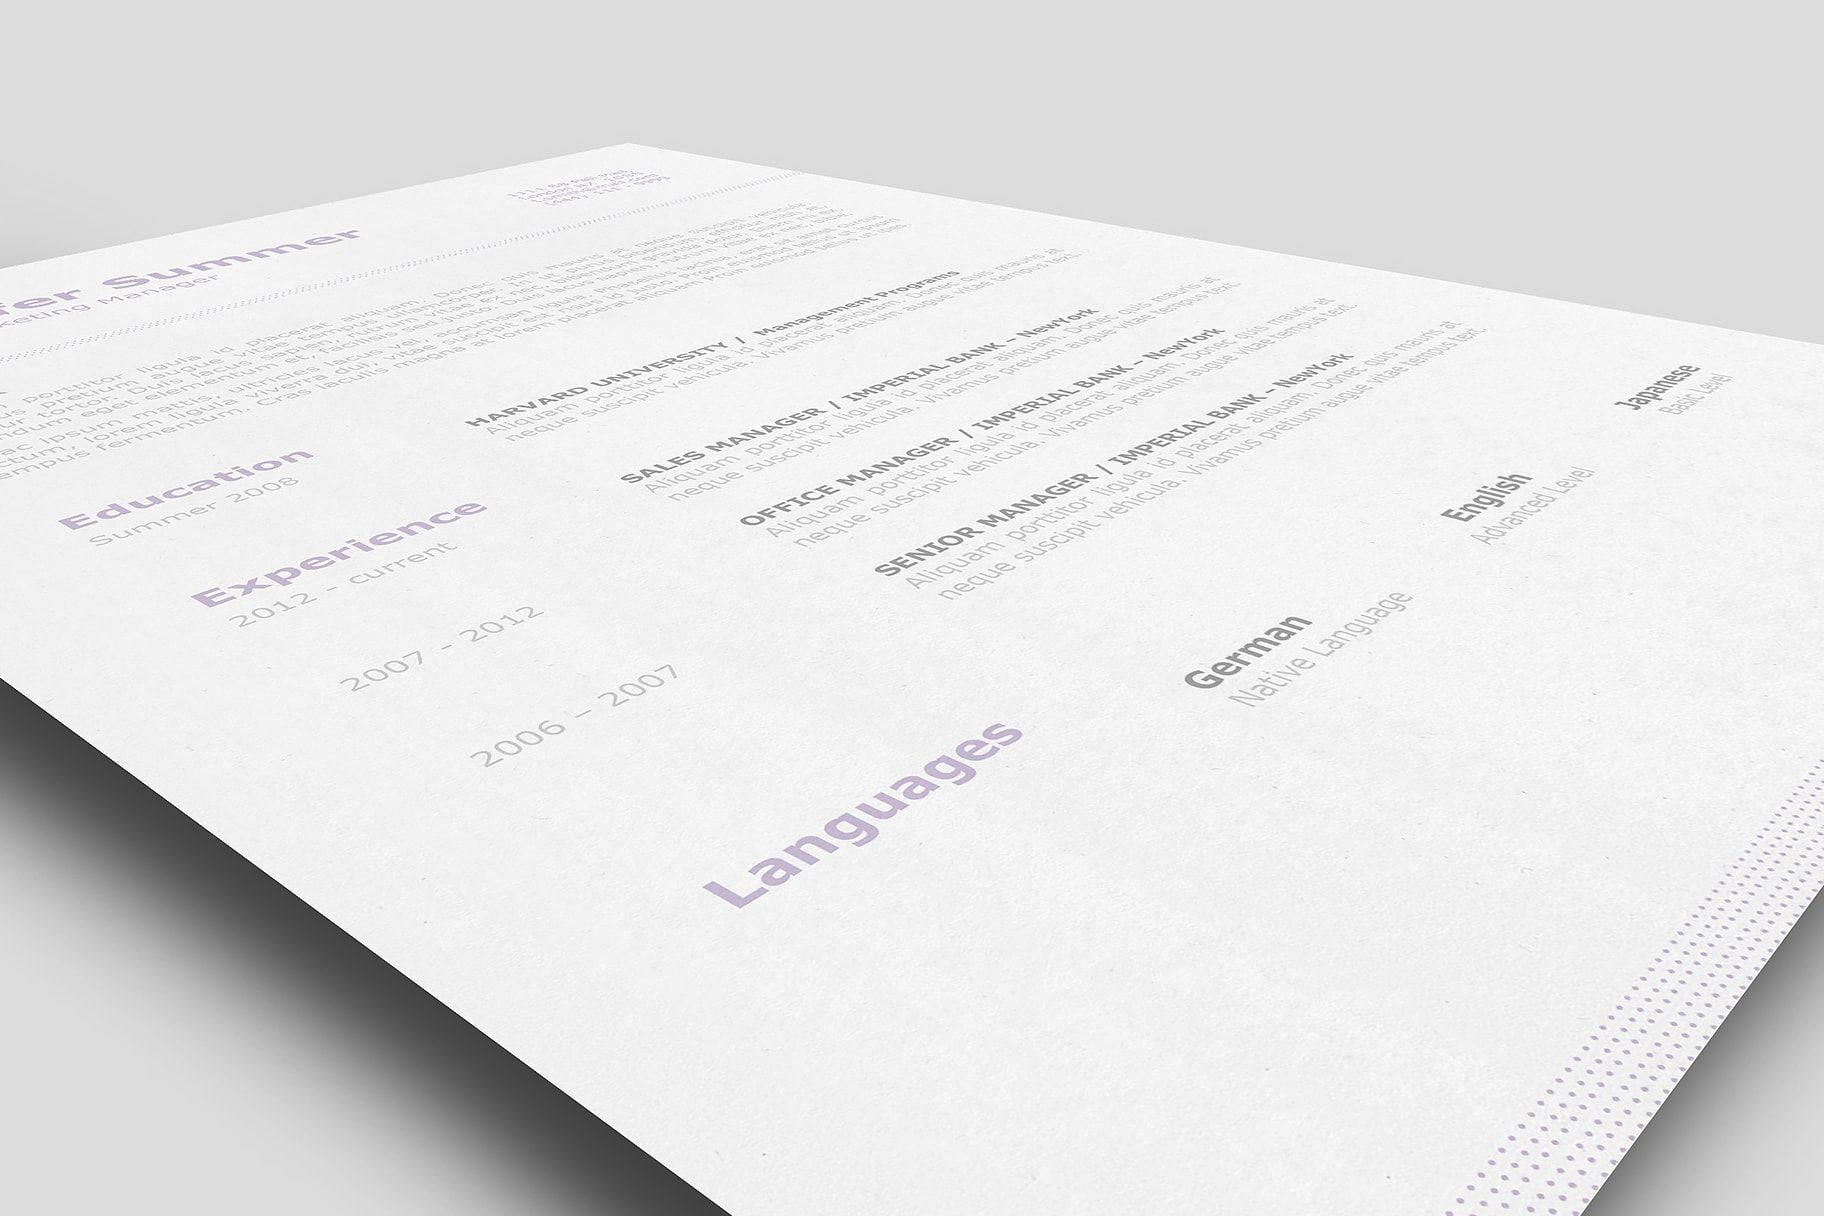 classic resume template 110710 is for anyone looking to create a professional resume and cover letter - Iwork Resume Templates